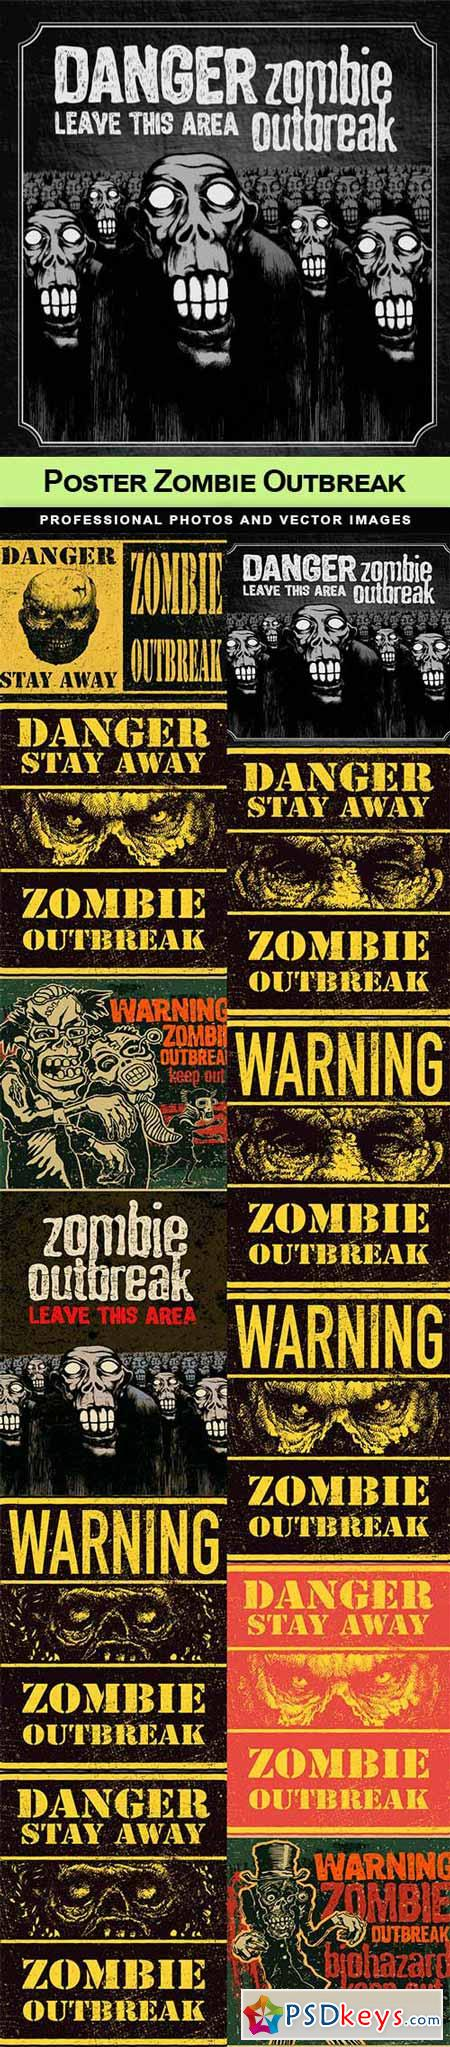 Poster Zombie Outbreak - 12 EPS